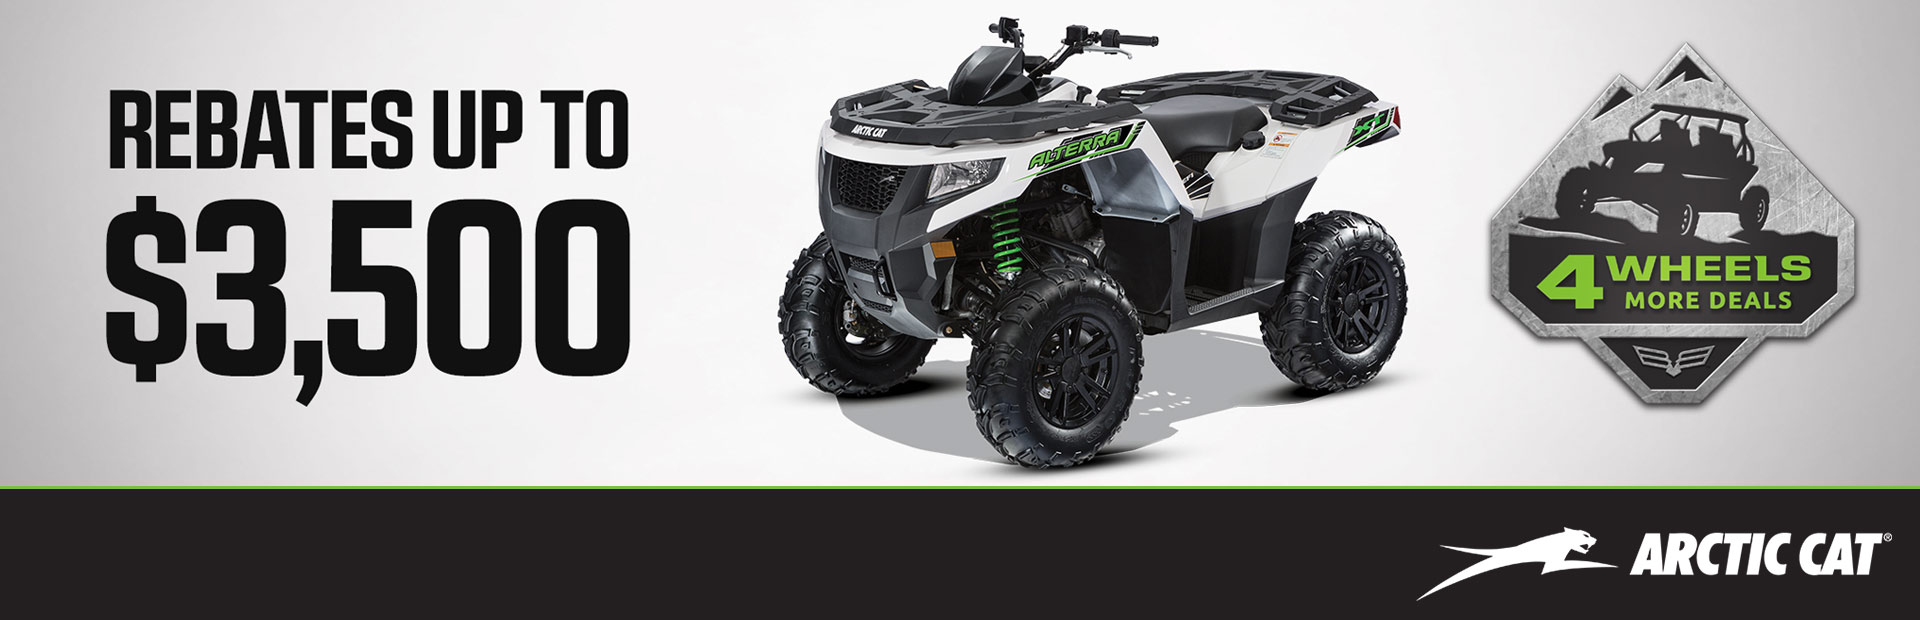 4 Wheels More Deals Sales Event - ATVs